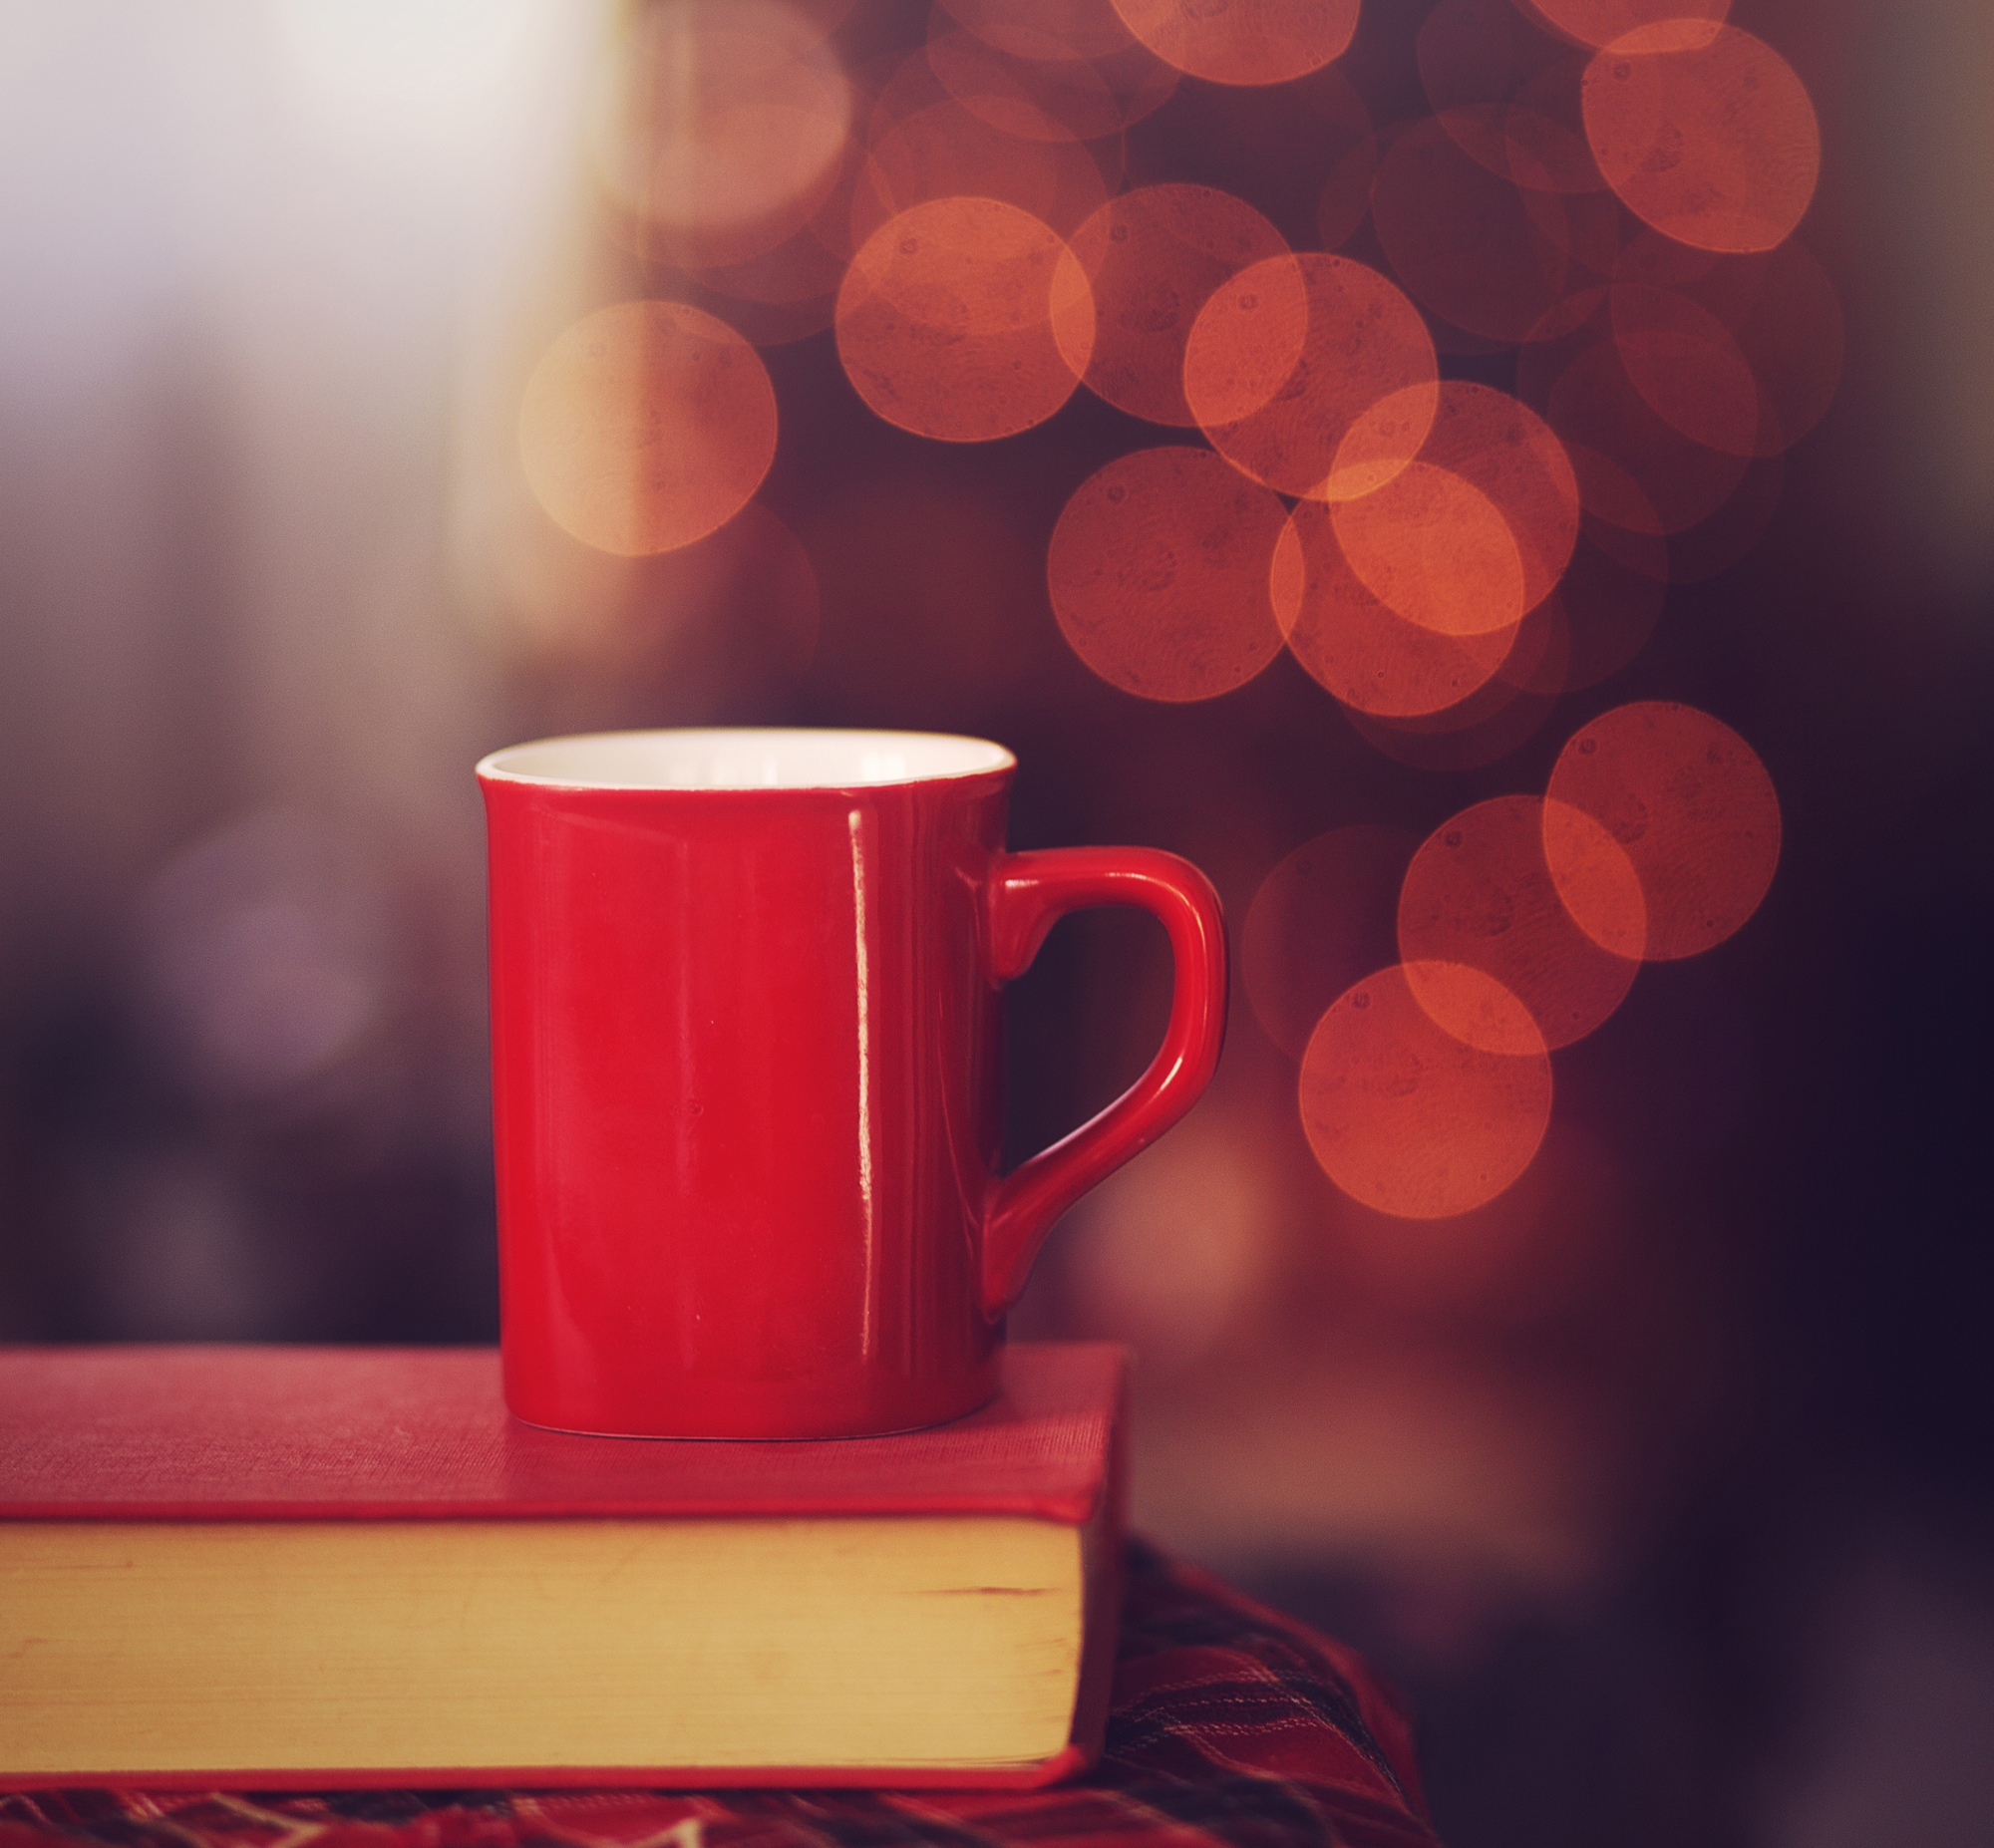 Red coffee cup on red book